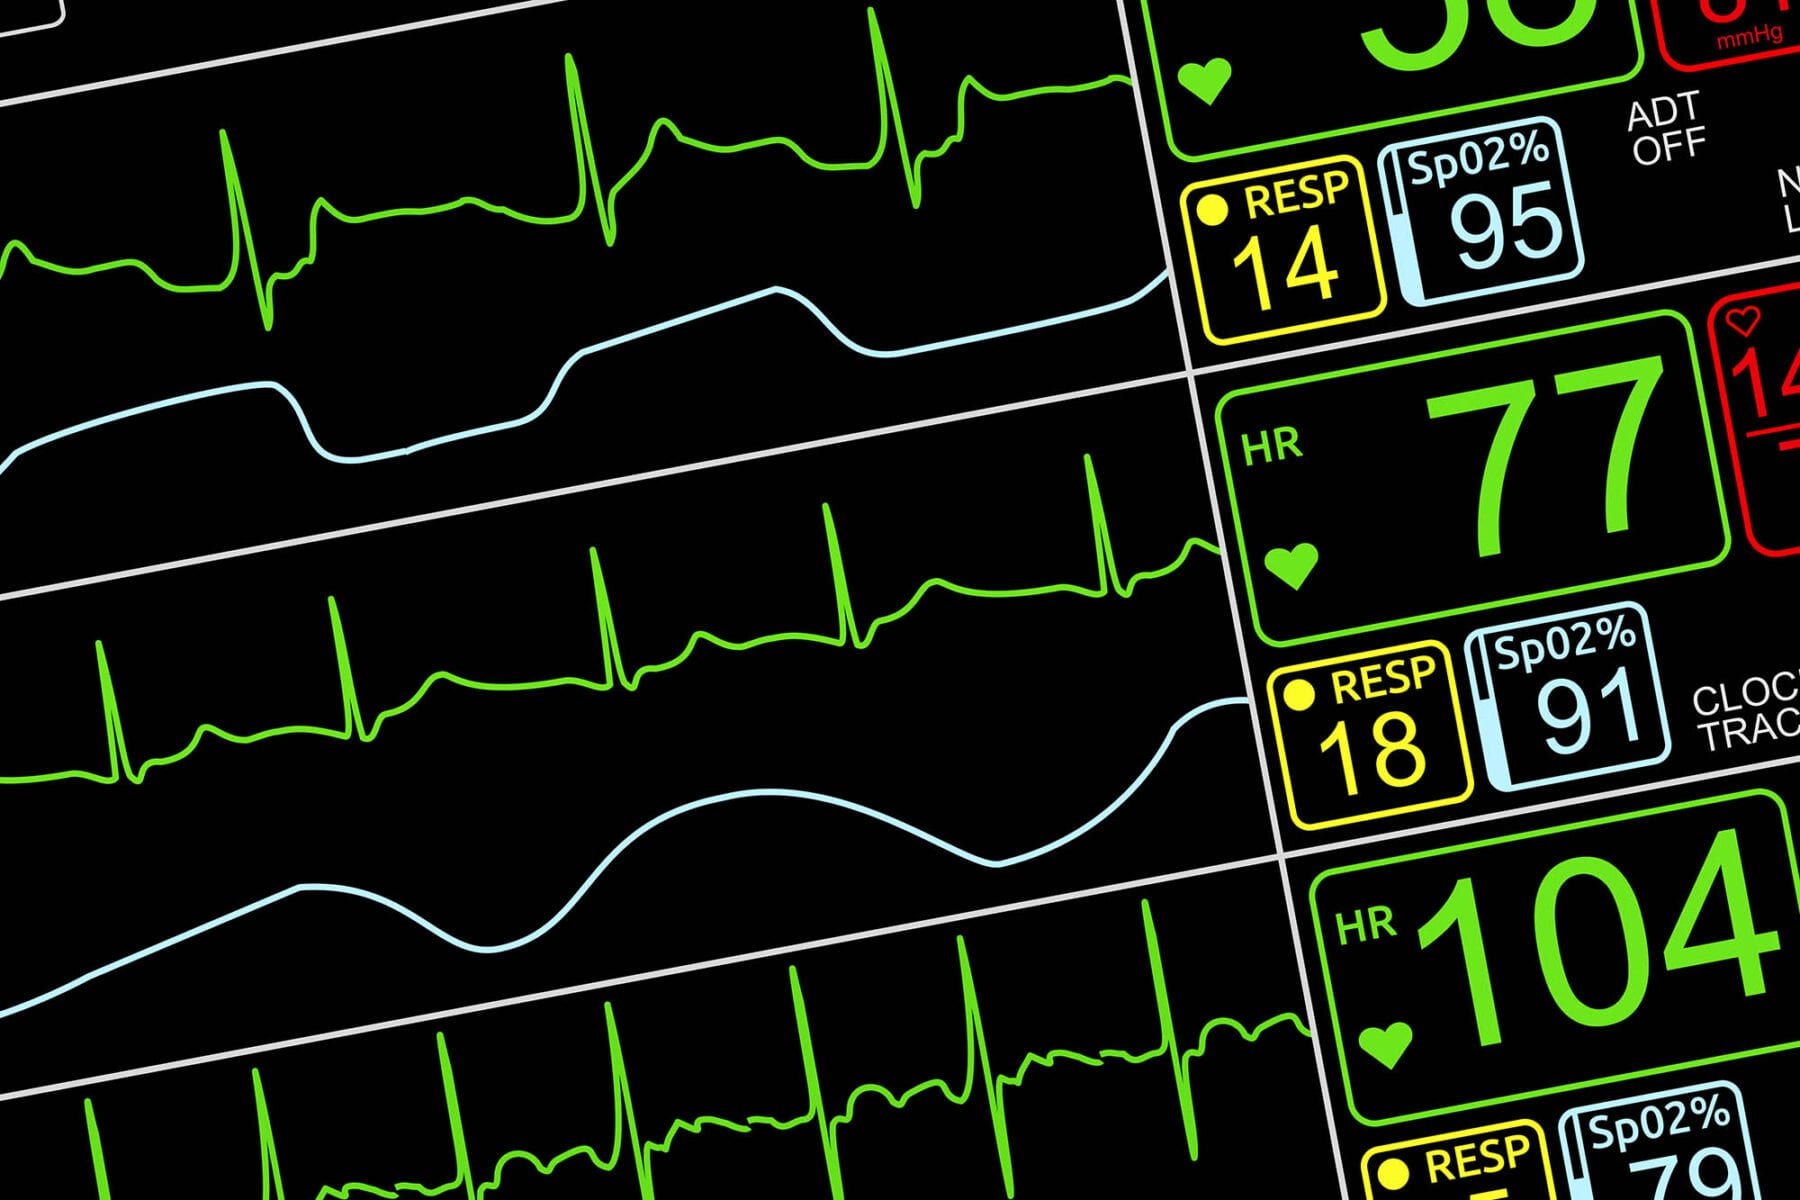 Patient's vital signs on ICU monitor, isolated closeup, dutched left via UVA